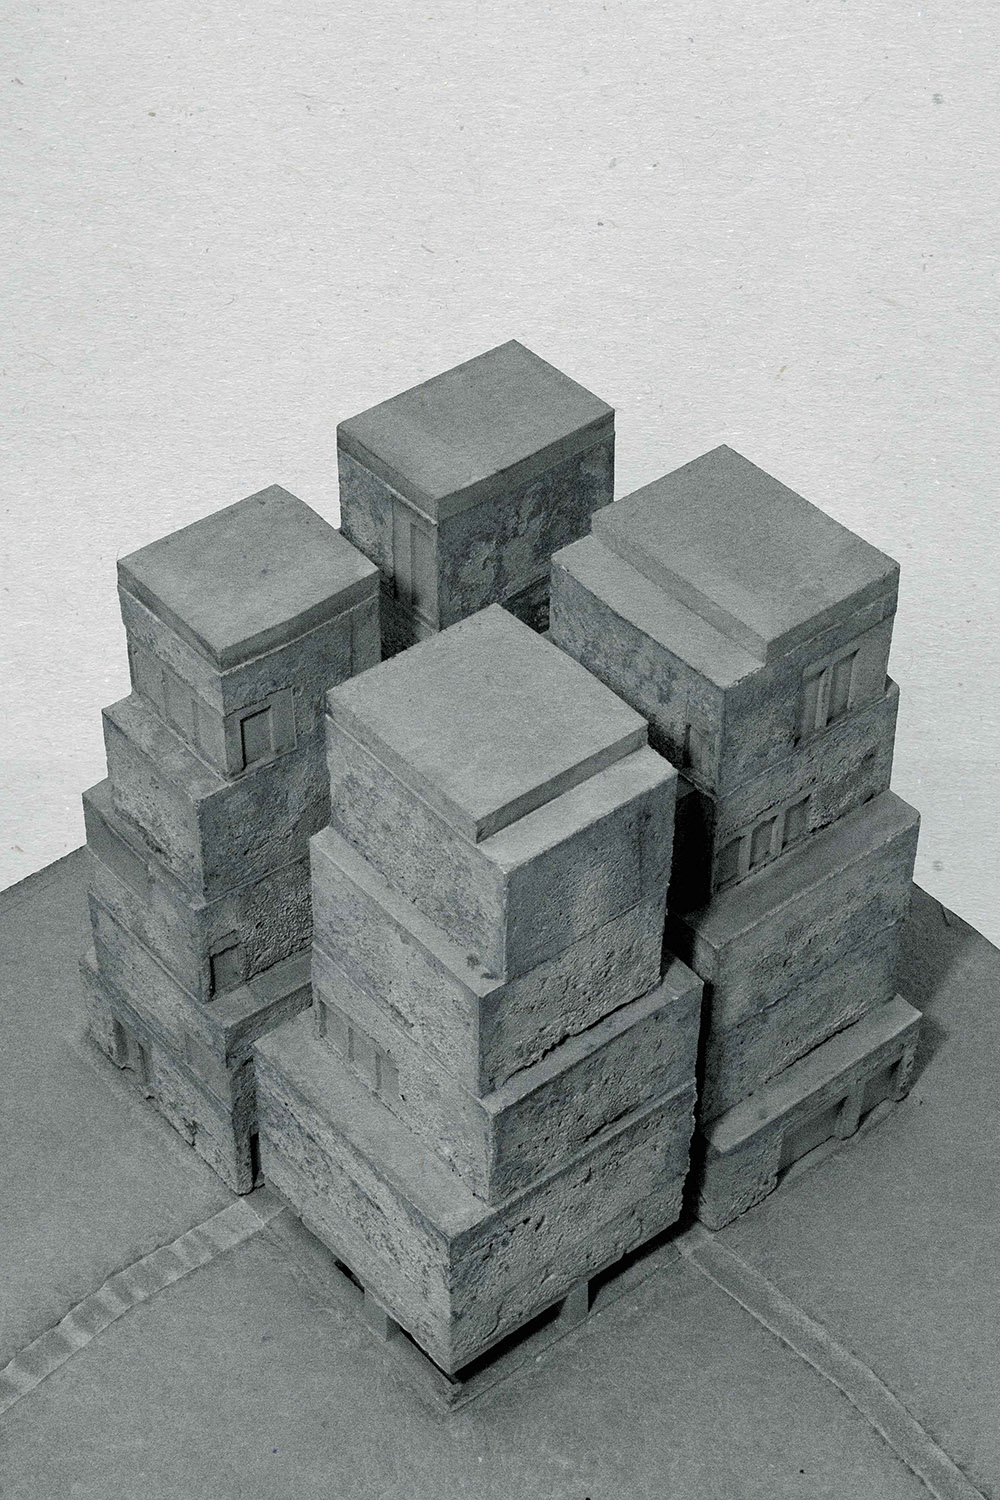 Study for a Depot in a Park Boijmans van Beuningen Museumpark, Rotterdam, 2014  The paradoxical design-assignment for an artdepot, a closed volume, within the open and natural conditions of a park is answered with four small towers. The project is mainly about the condition - the distance and proximity - between the towers. A public continuation of landscape and the walking routes in the park.